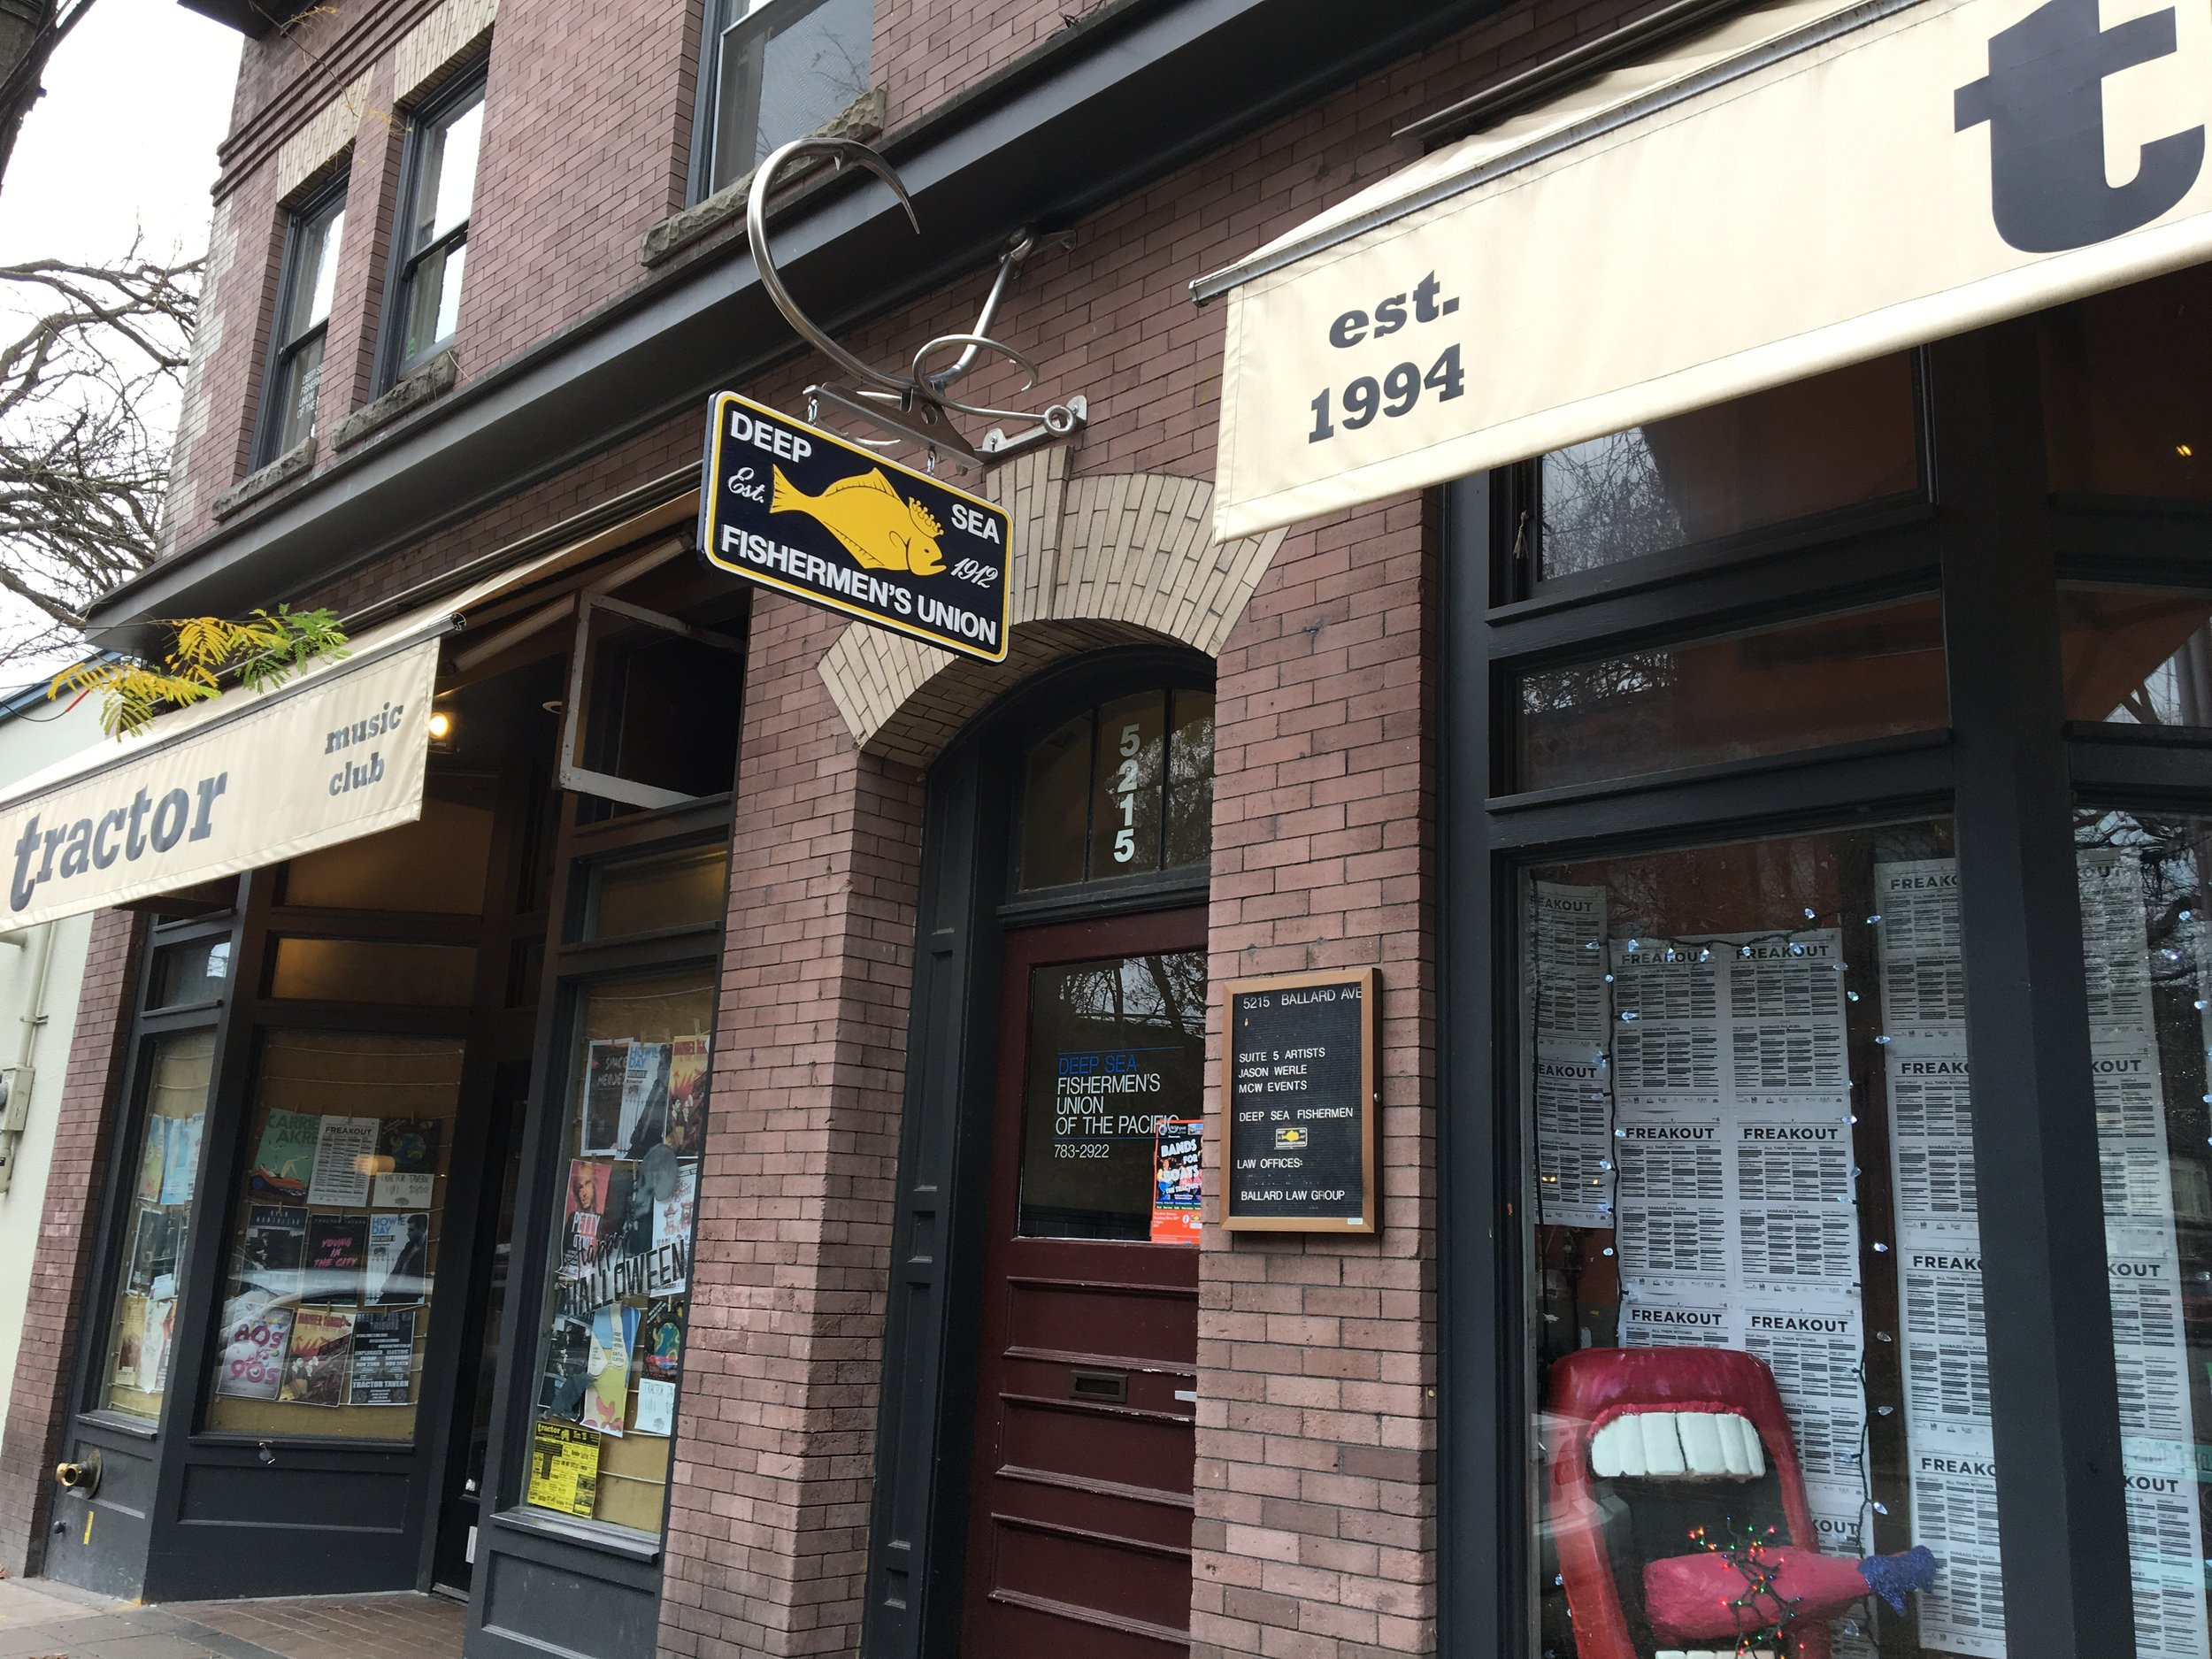 Now in our 70th year as proud owners and stewards of one of Seattle's historic buildings - Ballard's Fishermen's Building, still the headquarters of our nation's oldest and sole remaining fishermen's labor union - the Deep Sea Fishermen's Union of the Pacific